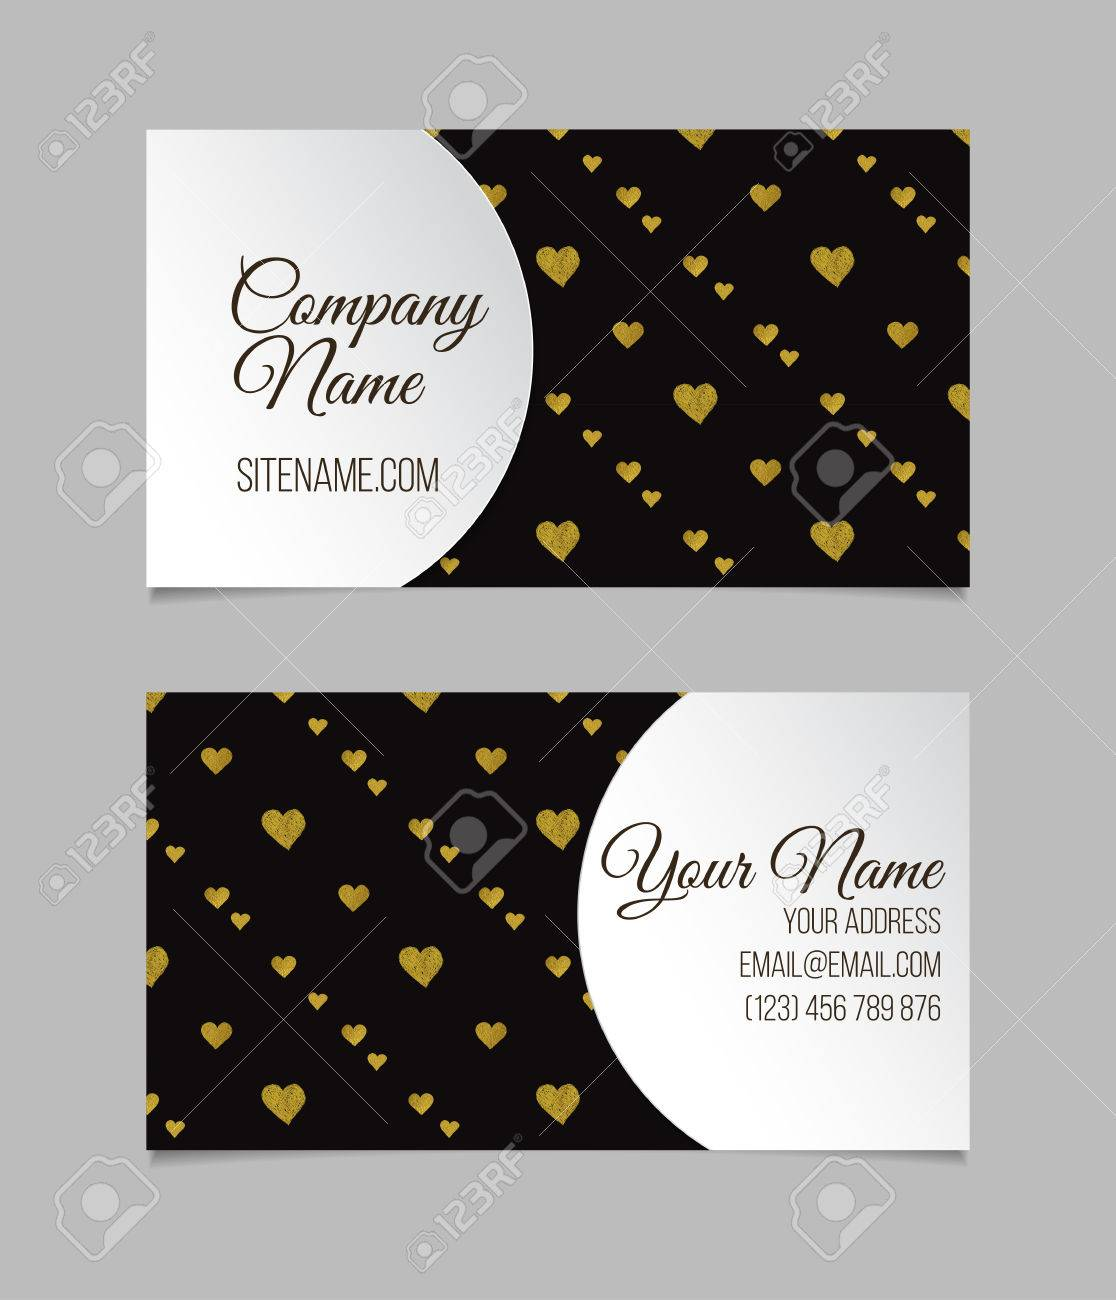 Business card template visiting card with golden foil hearts business card template visiting card with golden foil hearts double sided vector business friedricerecipe Images